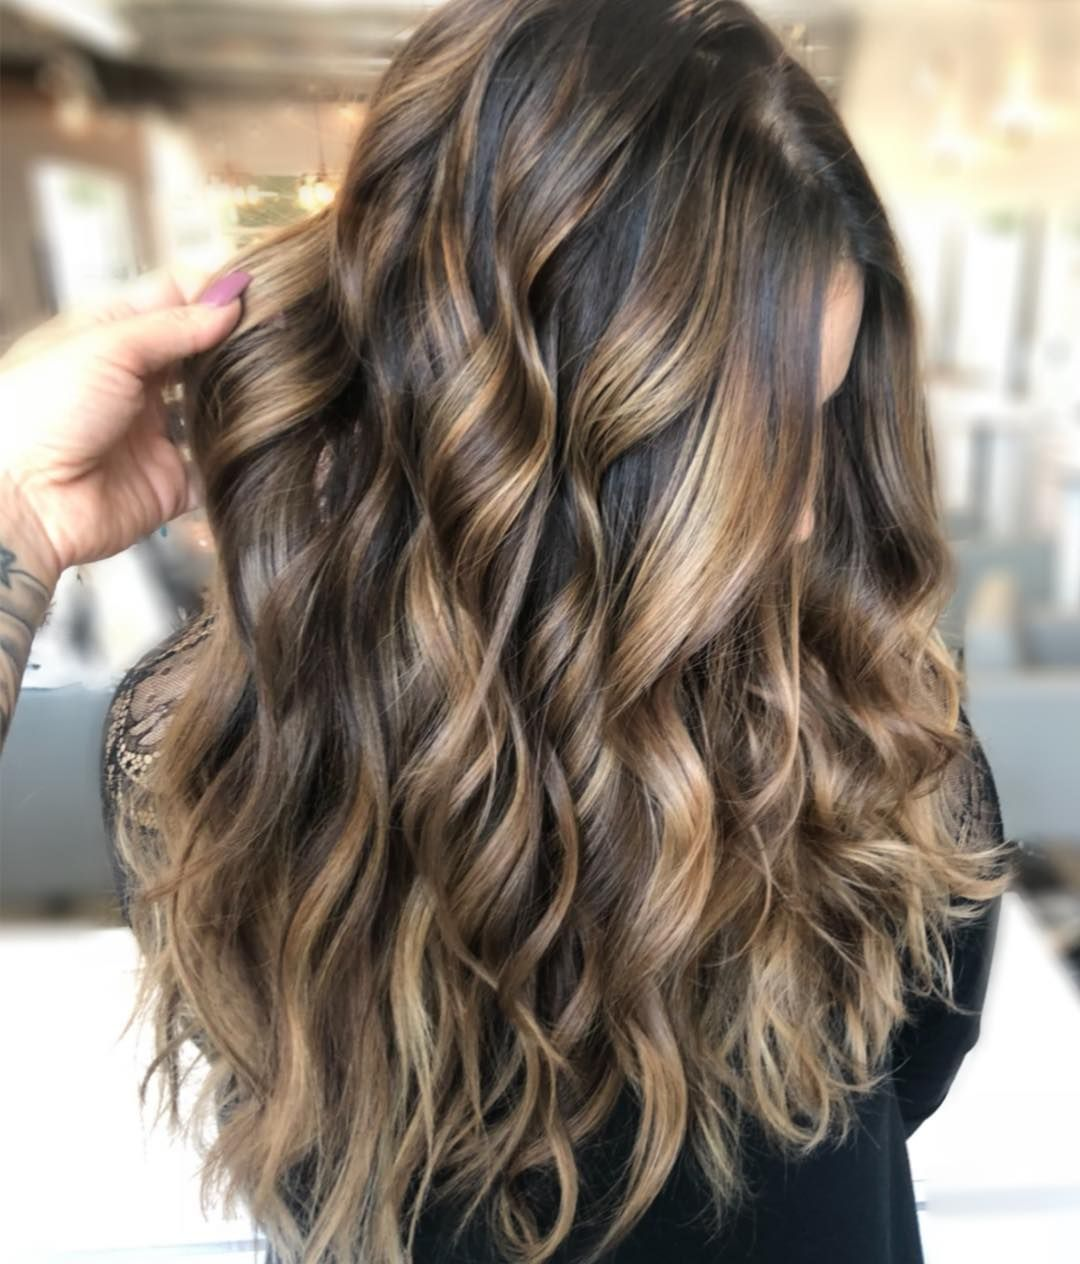 """Brunette Balayage✨ . . I love the softness of a hand painted balayage on brunettes✨ and especially on @kimberlynicolehair and her gorgeous…<p><a href=""""http://www.homeinteriordesign.org/2018/02/short-guide-to-interior-decoration.html"""">Short guide to interior decoration</a></p>"""